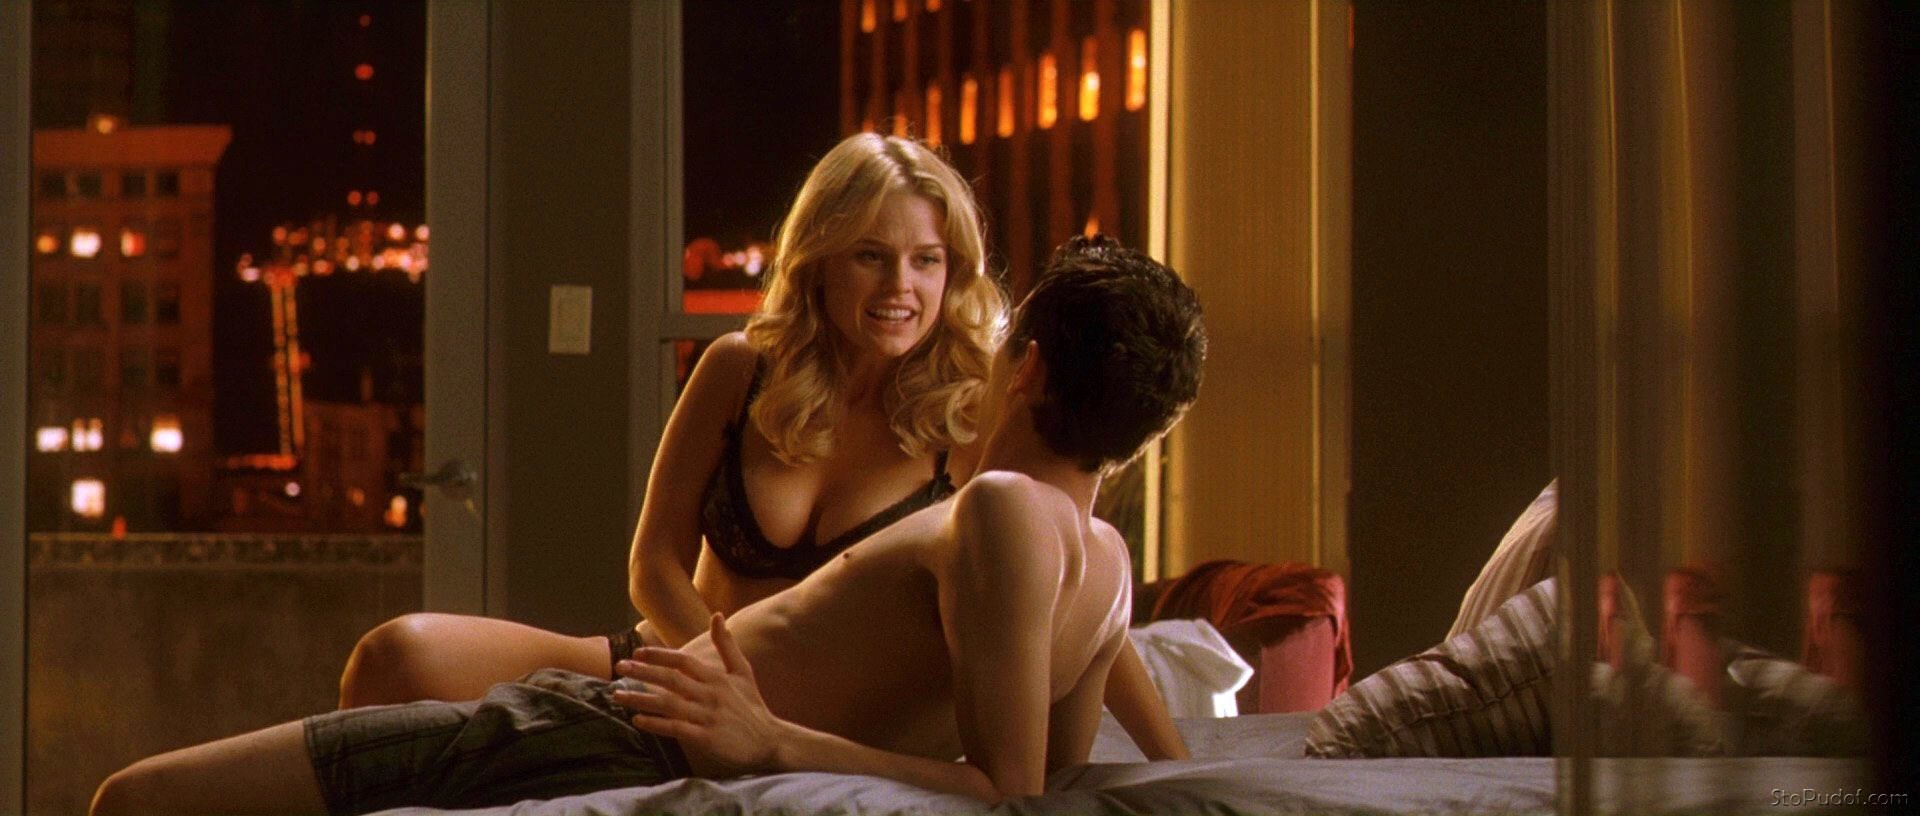 nude photos of Alice Eve pictures - UkPhotoSafari